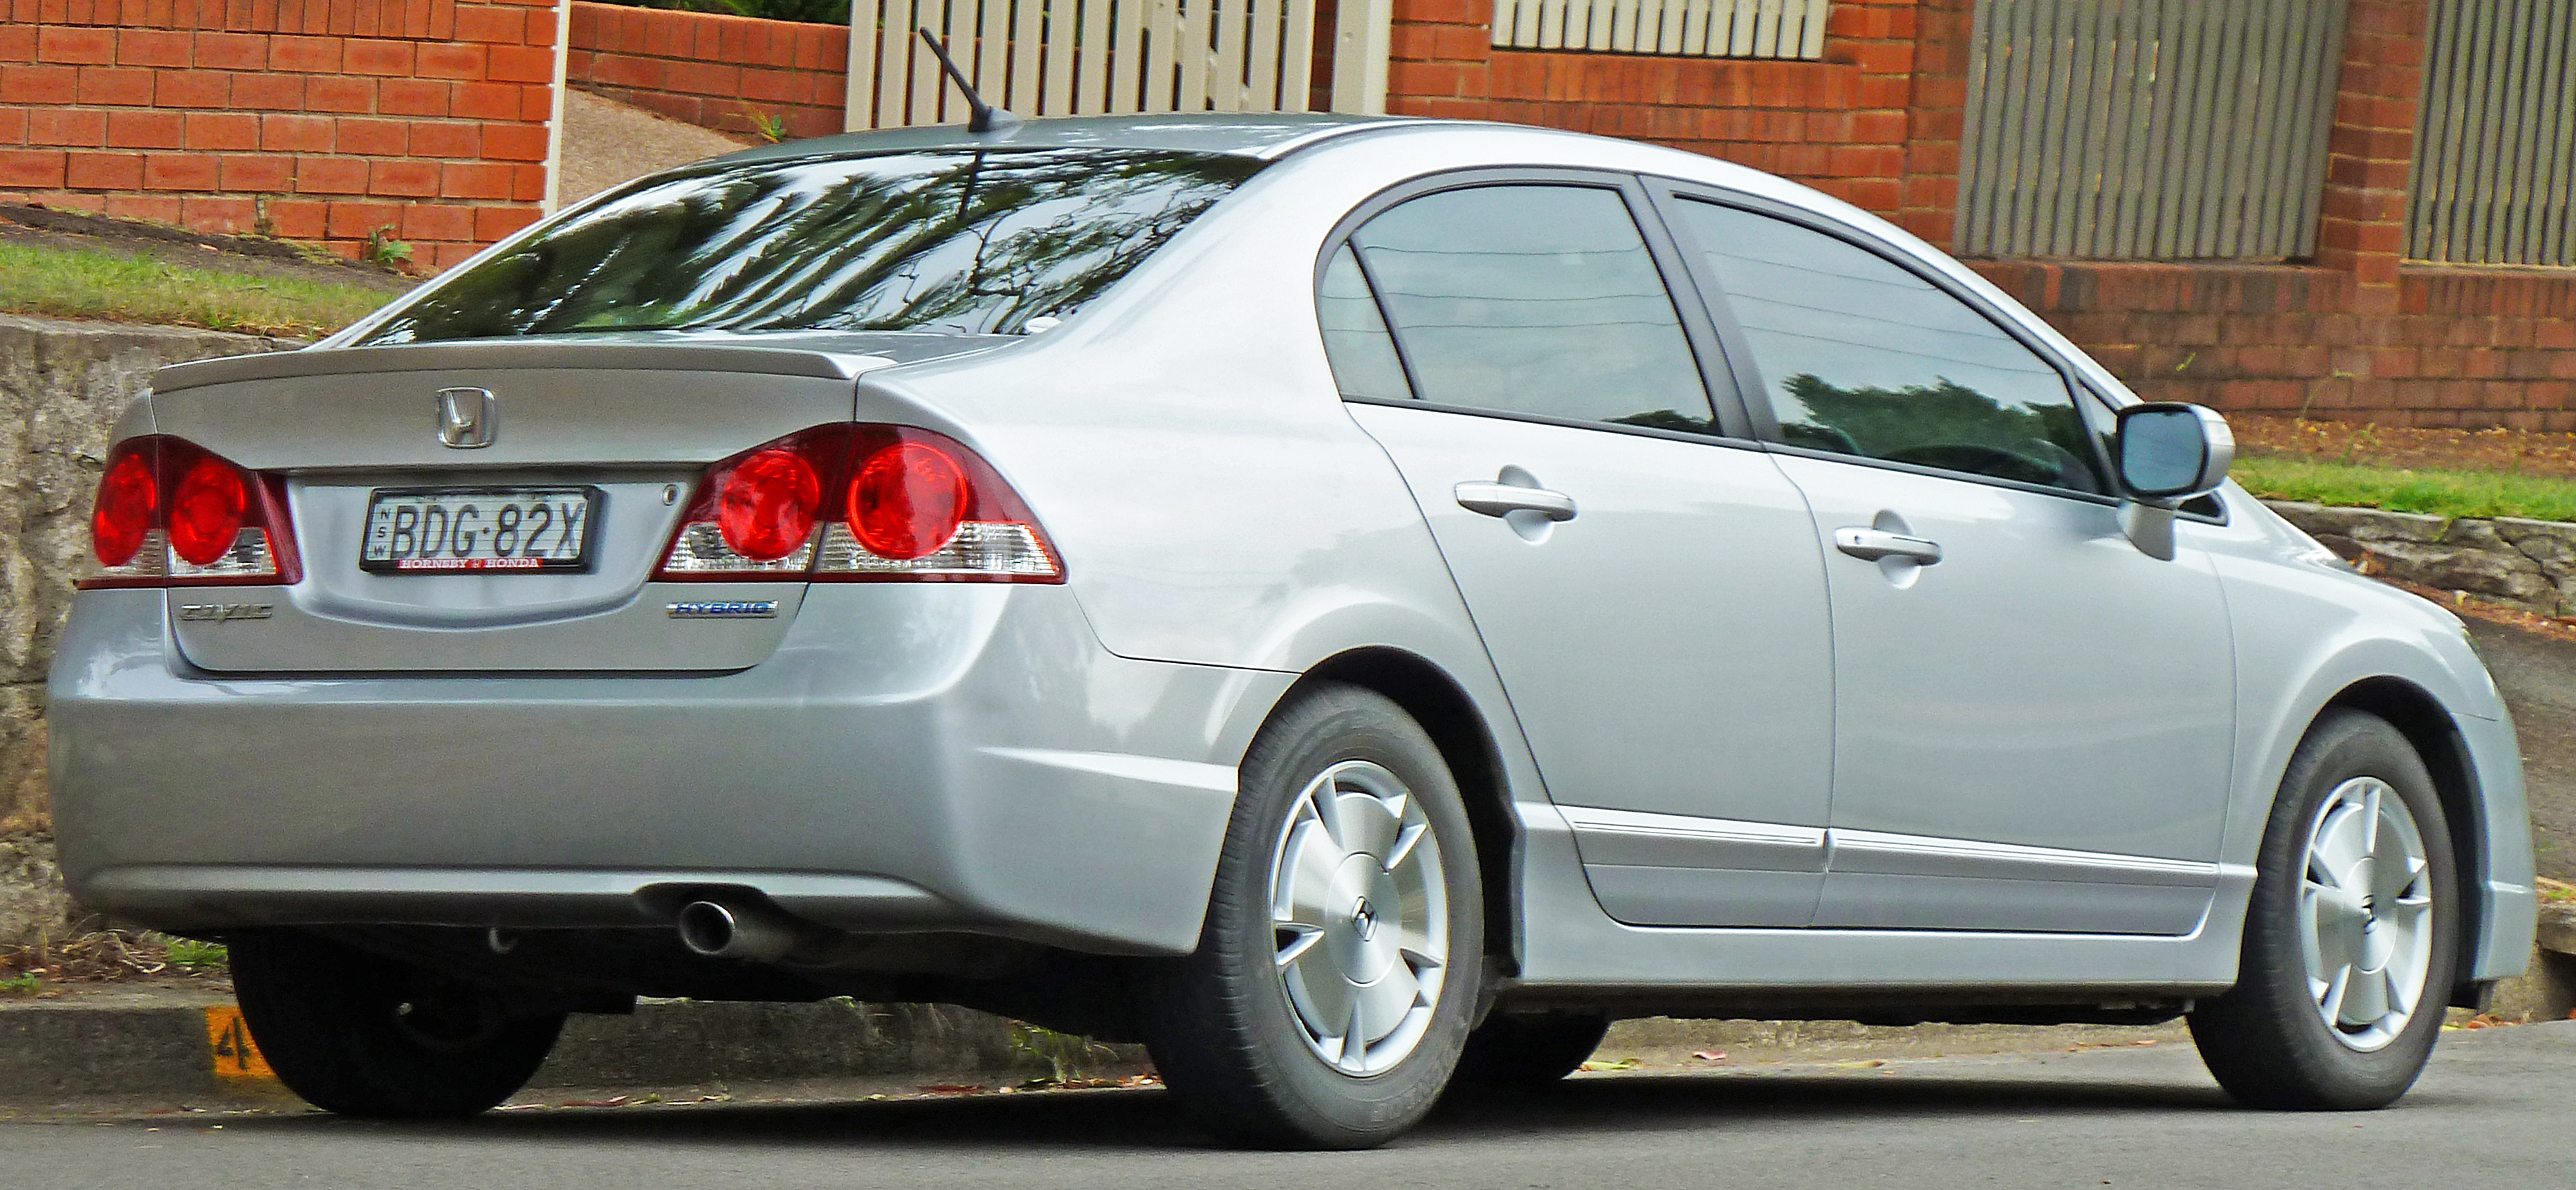 2006-2008_honda_civic_hybrid_sedan_(2011-03-10)_02